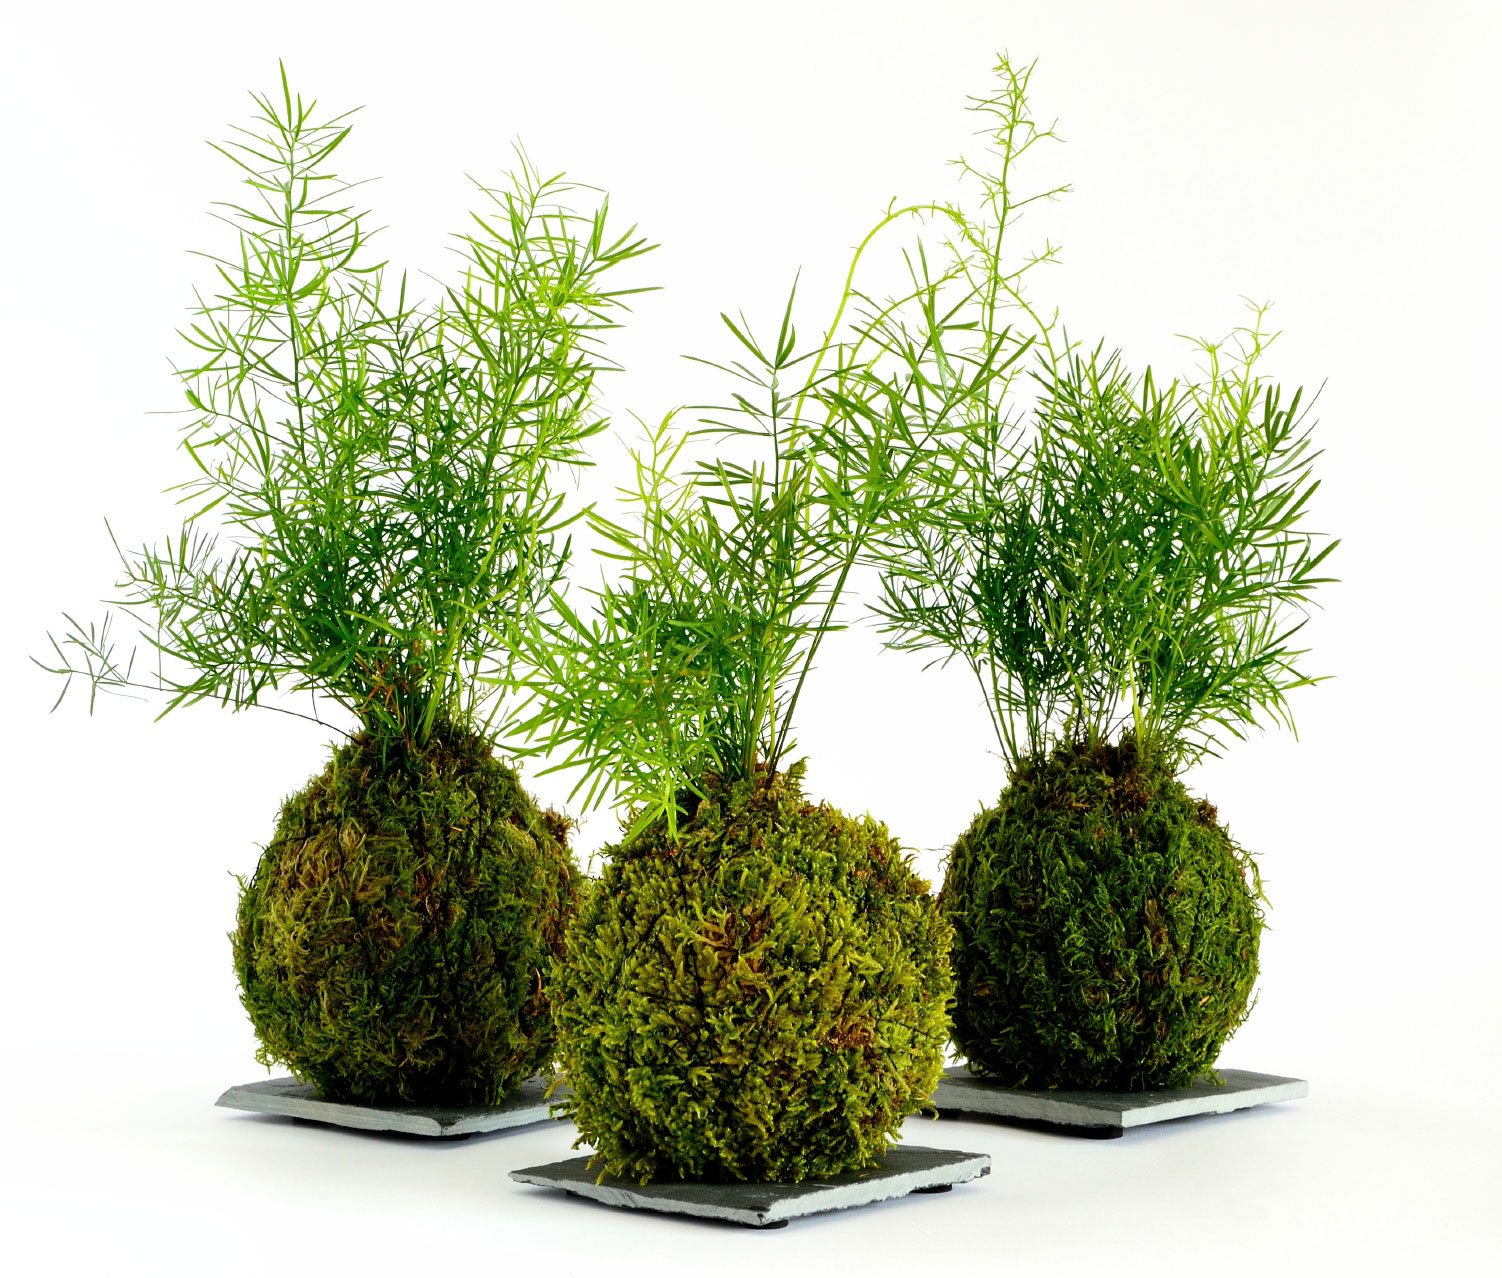 How To Make A Japanese Moss Ball